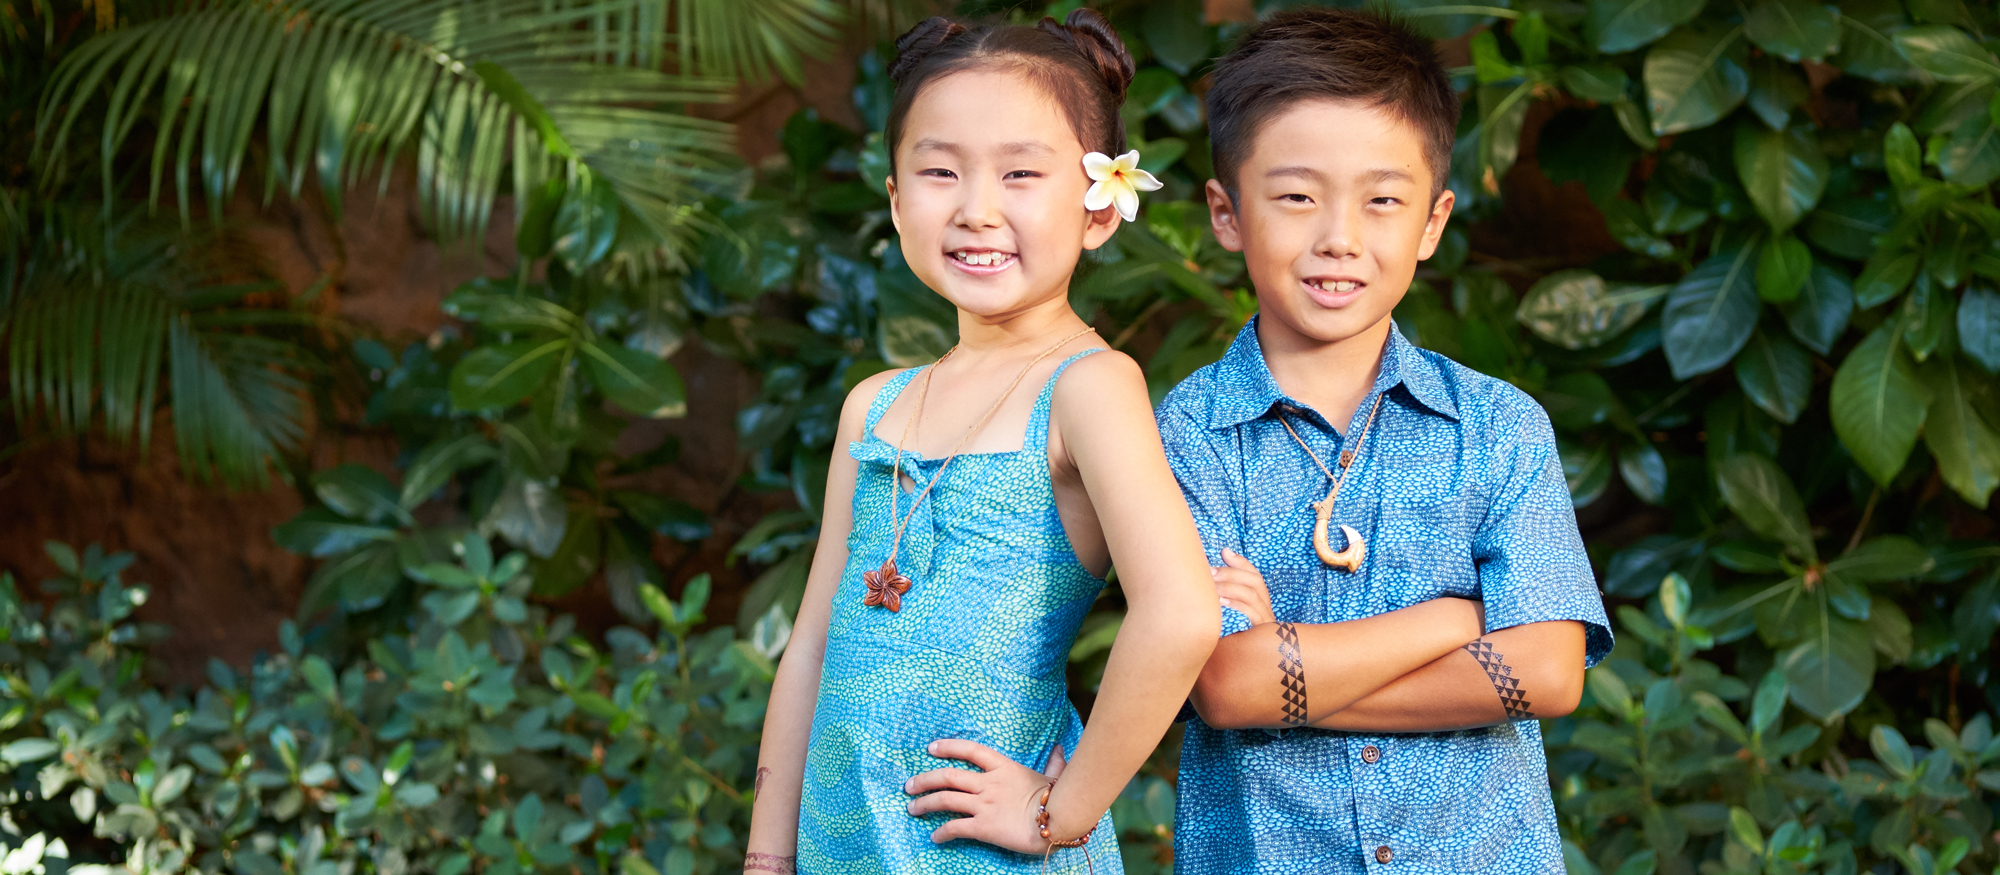 A young boy with temporary tattoos on his crossed arms and a fish hook necklace stands next to a girl with a flower behind her ear